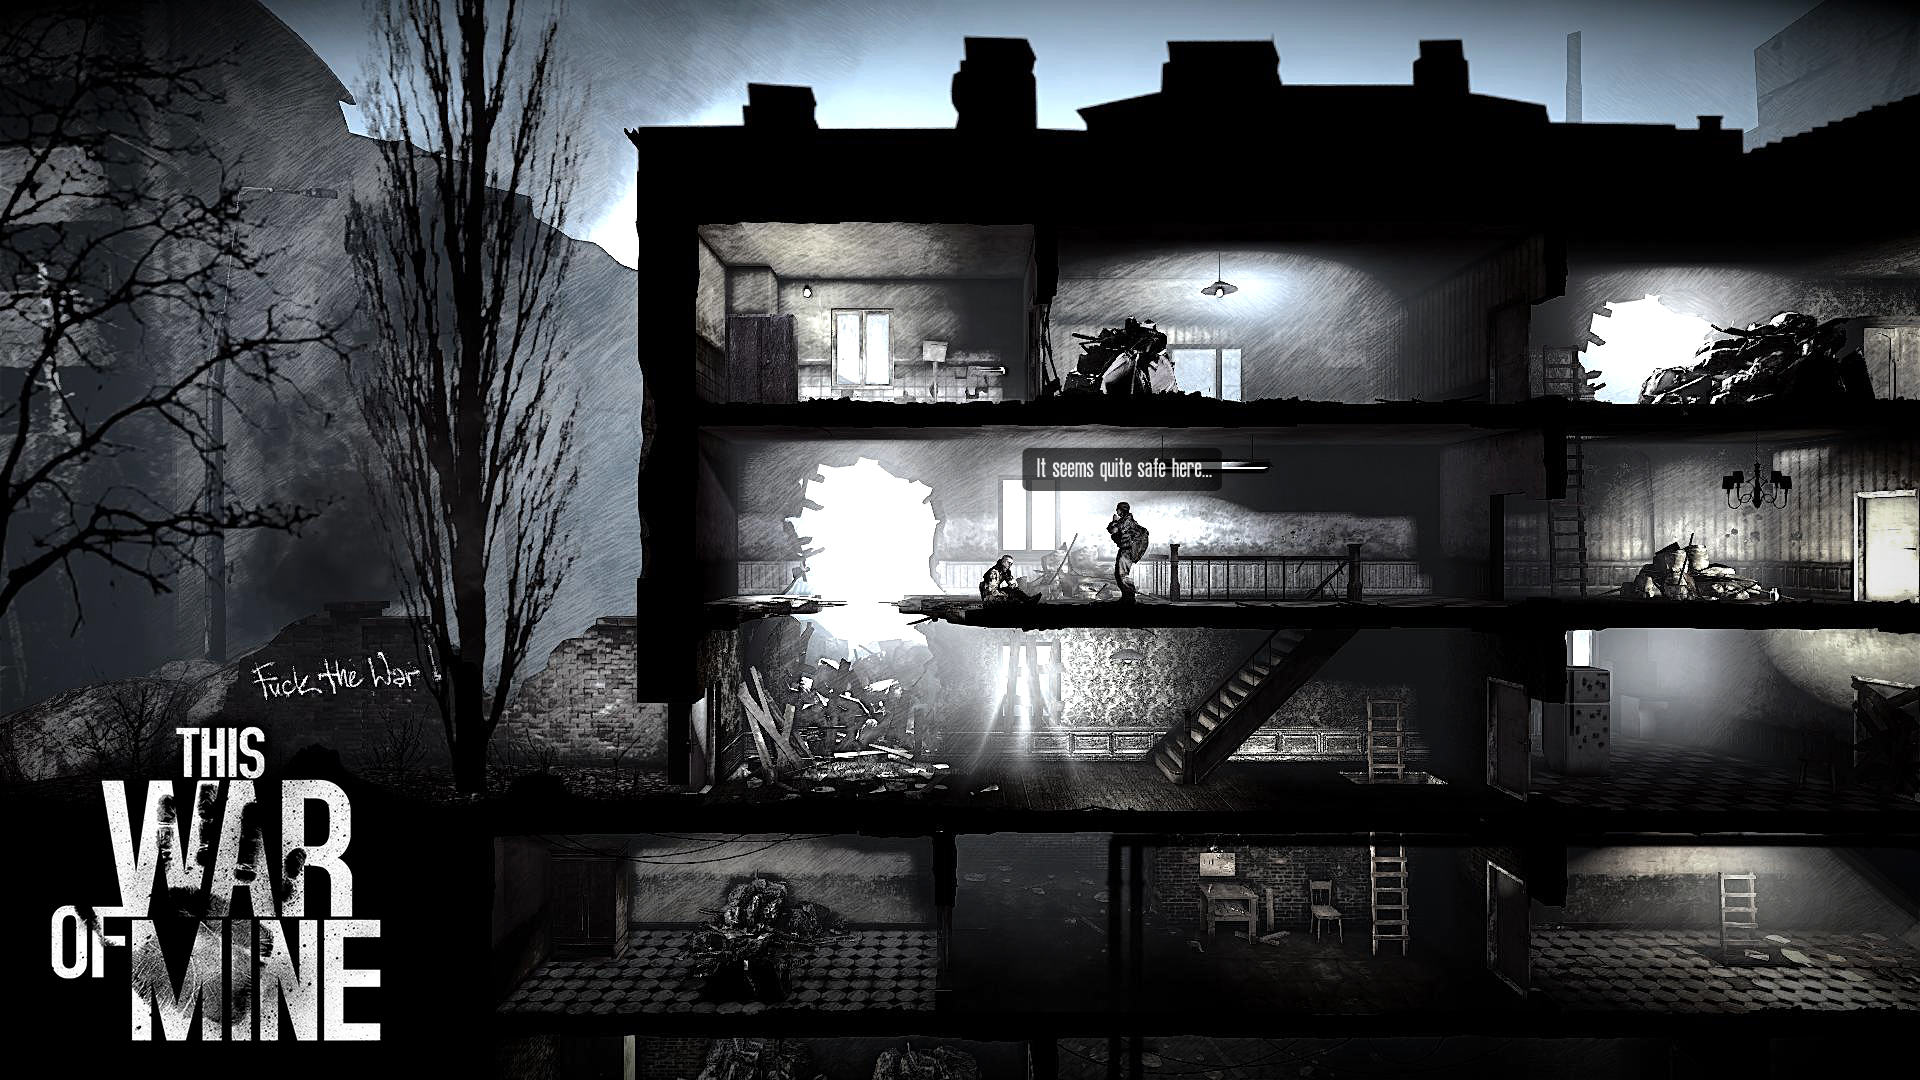 War of Mine The Amazing Game Of War For Survival Comes To Android Tablets And TV - tinoshare.com